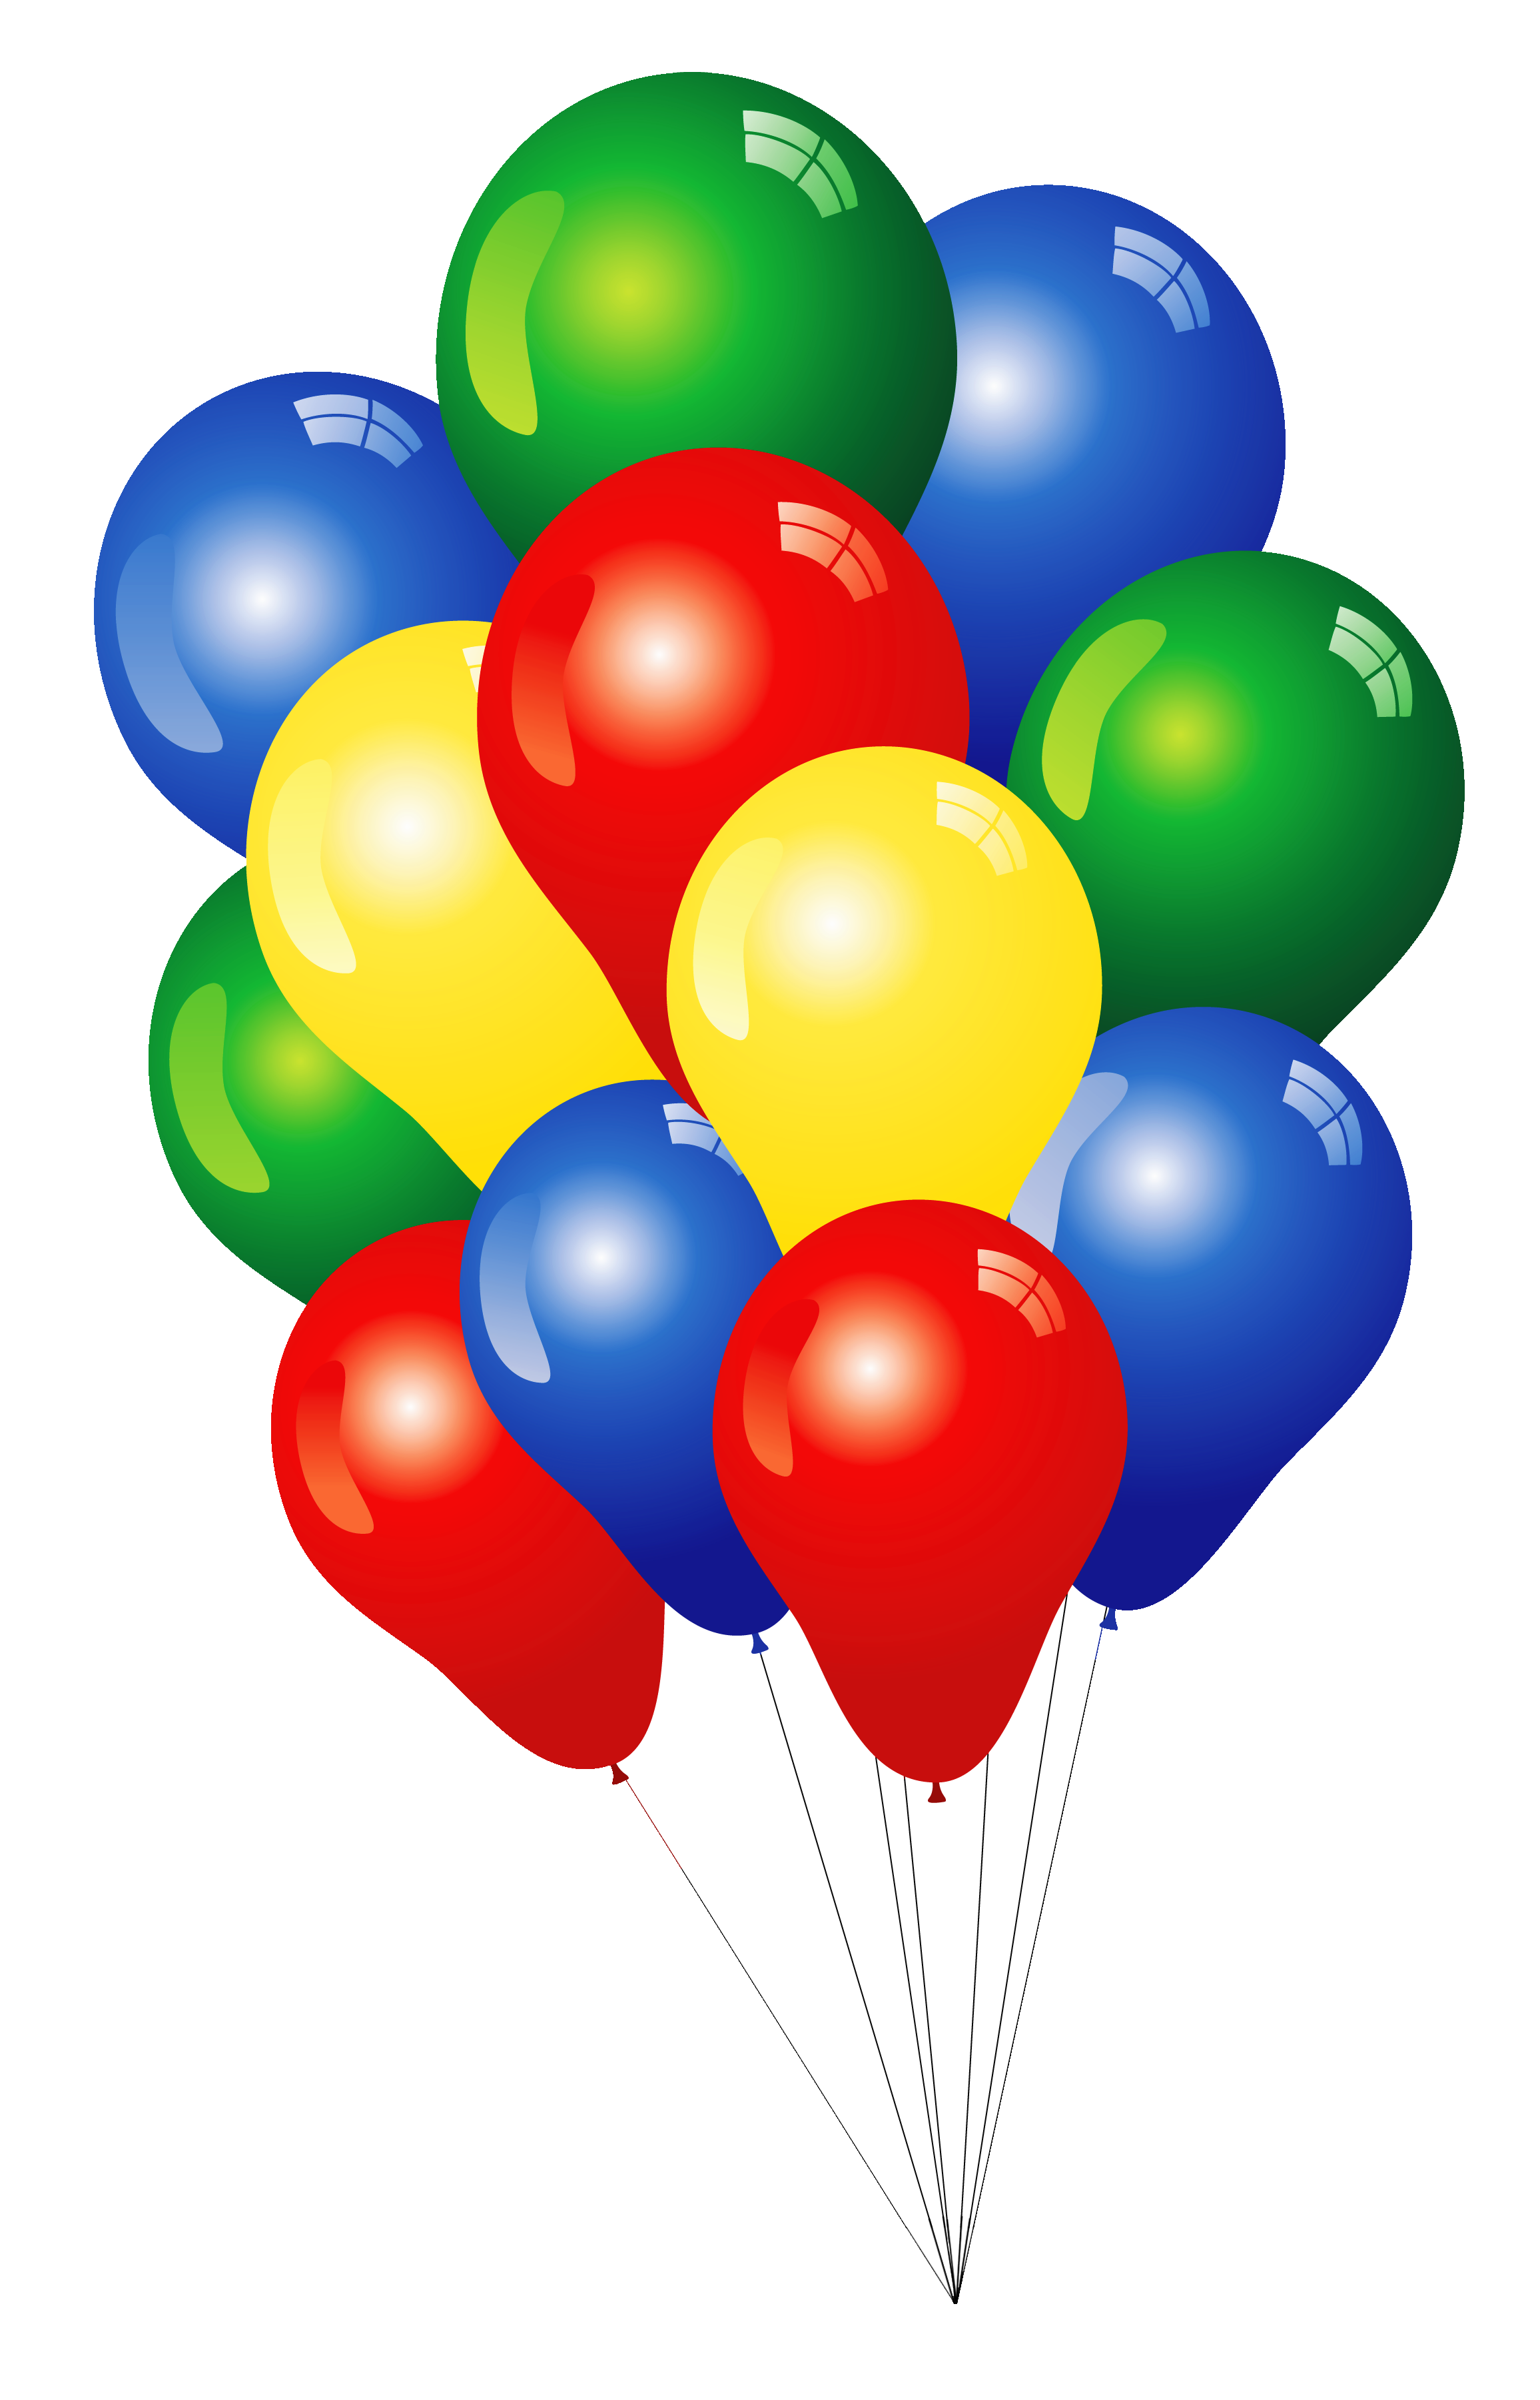 Free Clip Art Balloons - Clipart Of Balloons